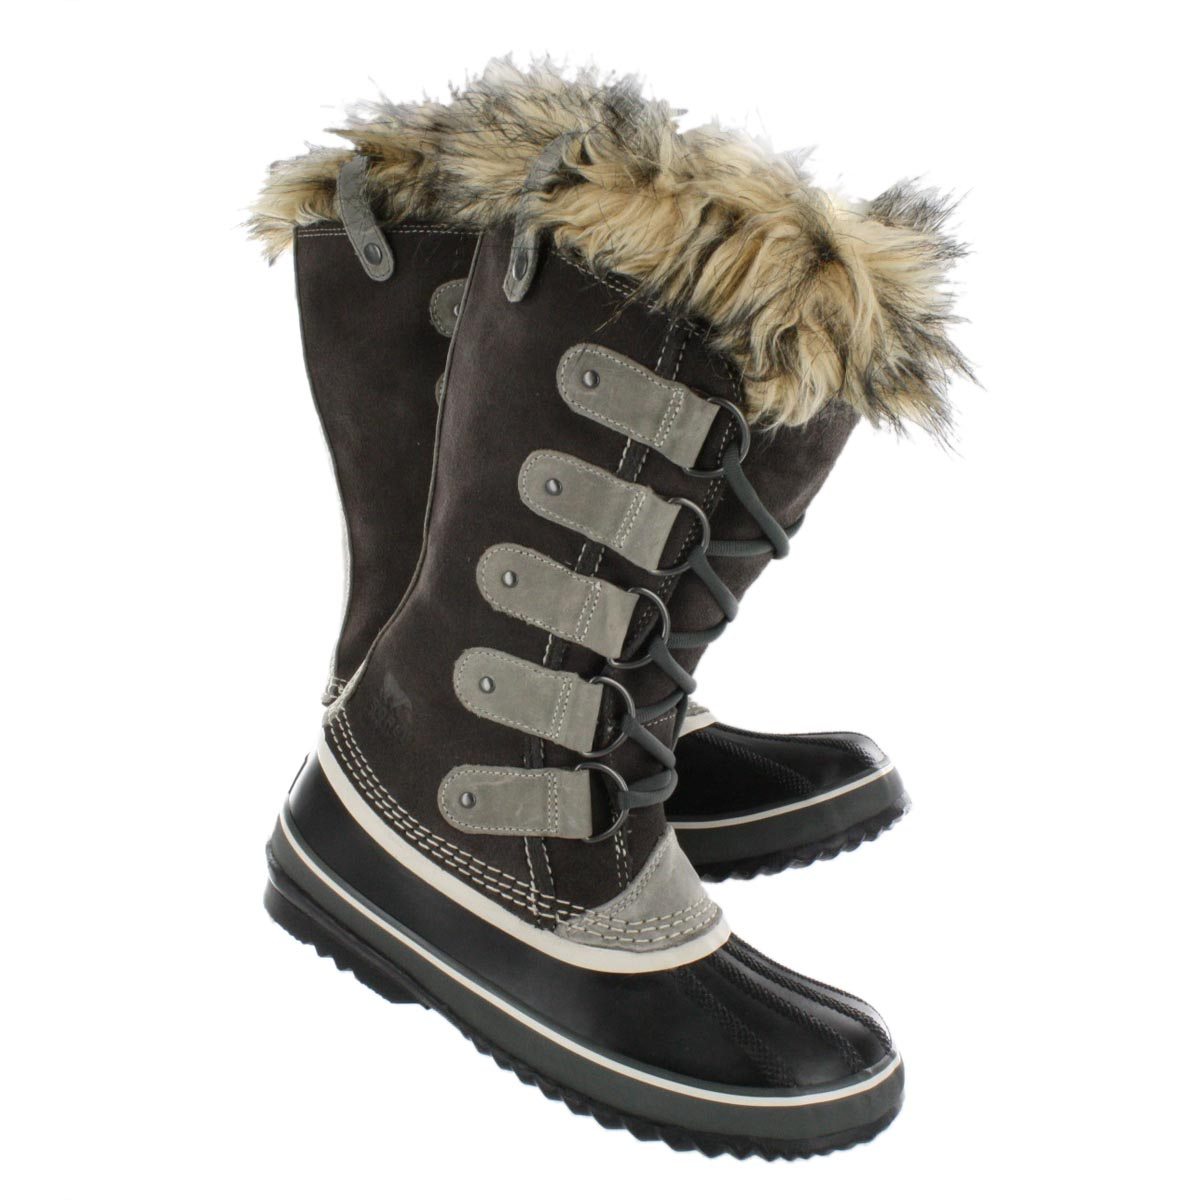 Cute Womens Snow Boots Waterproof OfuRnKNm